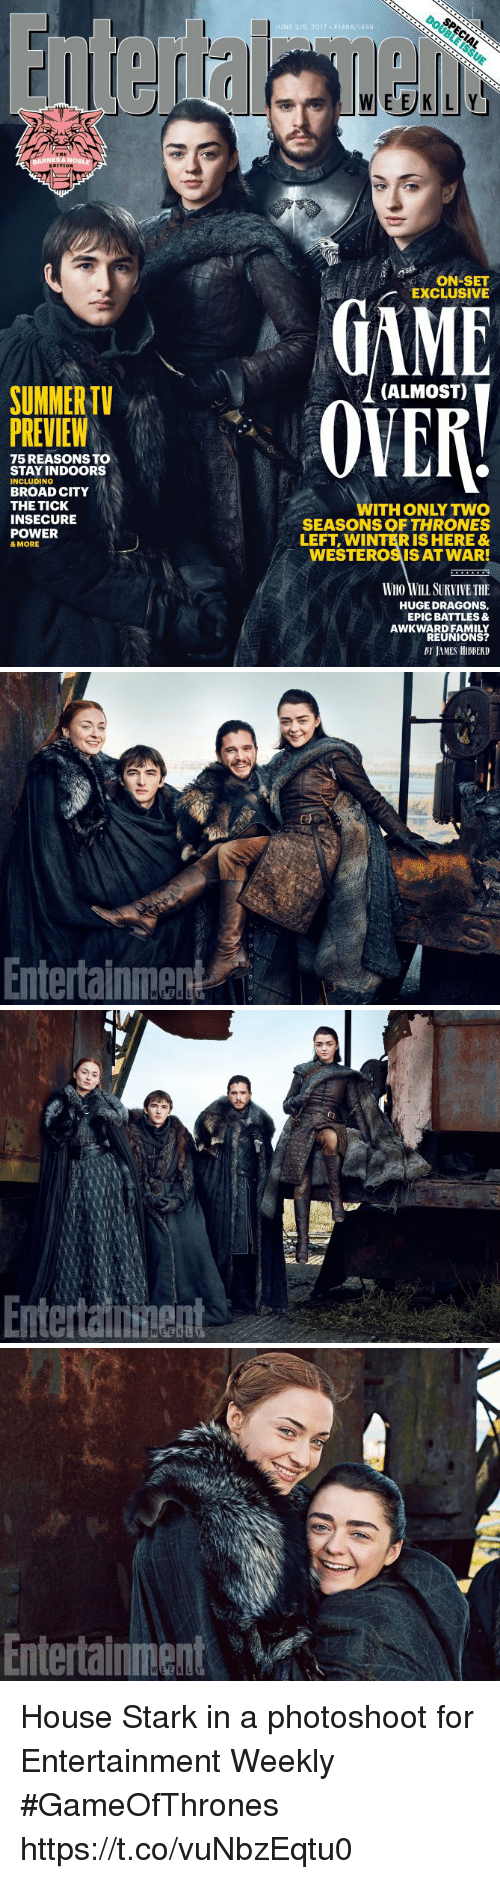 Family, Winter, and Awkward: SUMMER  PREVIEW  75 REASONS TO  STAY INDOORS  INCLUDING  BROAD CITY  THE TICK  INSECURE  POWER  & MORE  JUNE 219, 2017 146 BV146g  ON SET  EXCLUSIVE  (ALMOST)  ITH ONLY TWO  SEASONS OF THRONES  LEFT WINTER IS HERE&  WESTEROSISAT WAR!  WHO WILL SURVIVETHE  HUGE DRAGONS,  EPIC BATTLES &  AWKWARD FAMILY  REUNIONS?   Entertainment   Enteraituent   Entertainment House Stark in a photoshoot for Entertainment Weekly #GameOfThrones https://t.co/vuNbzEqtu0